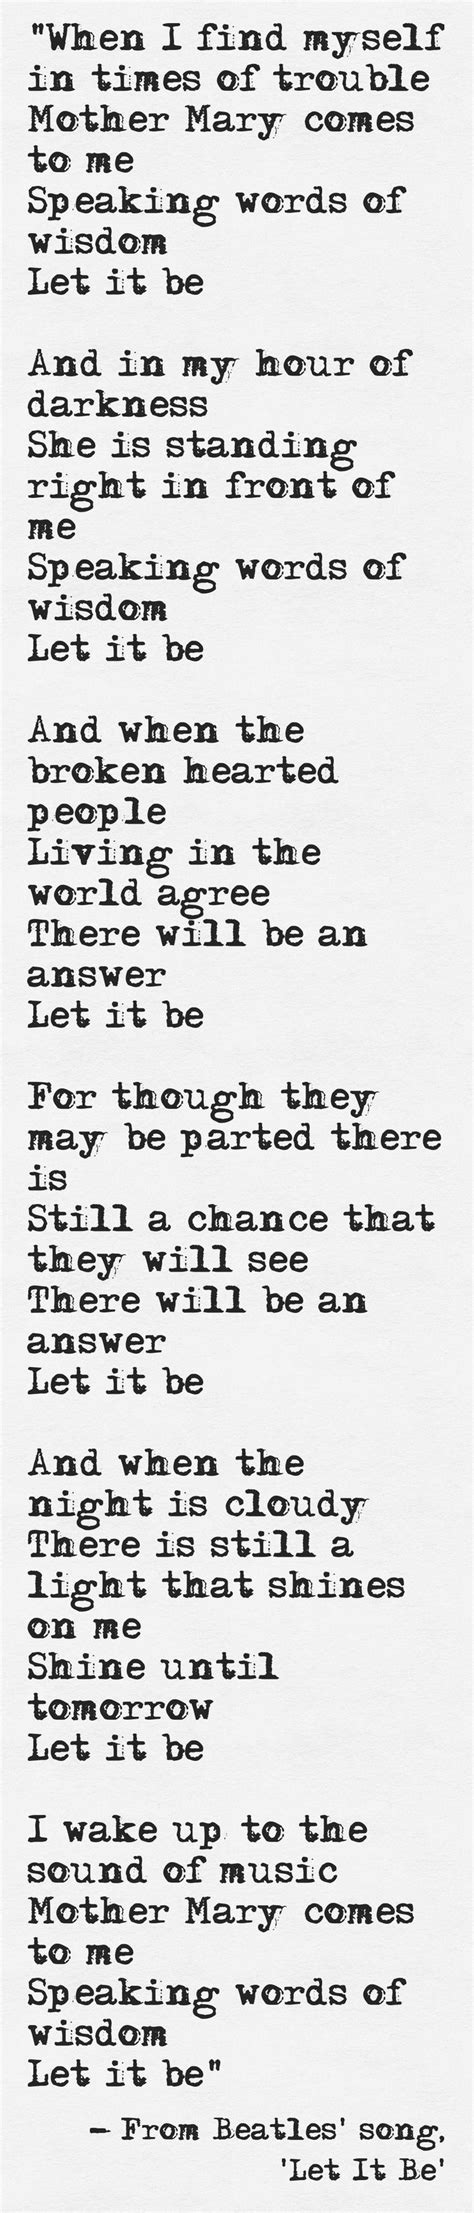 tattoo lyrics with guitar chords best 25 song lyric best 25 song lyrics ideas on pinterest song lyric